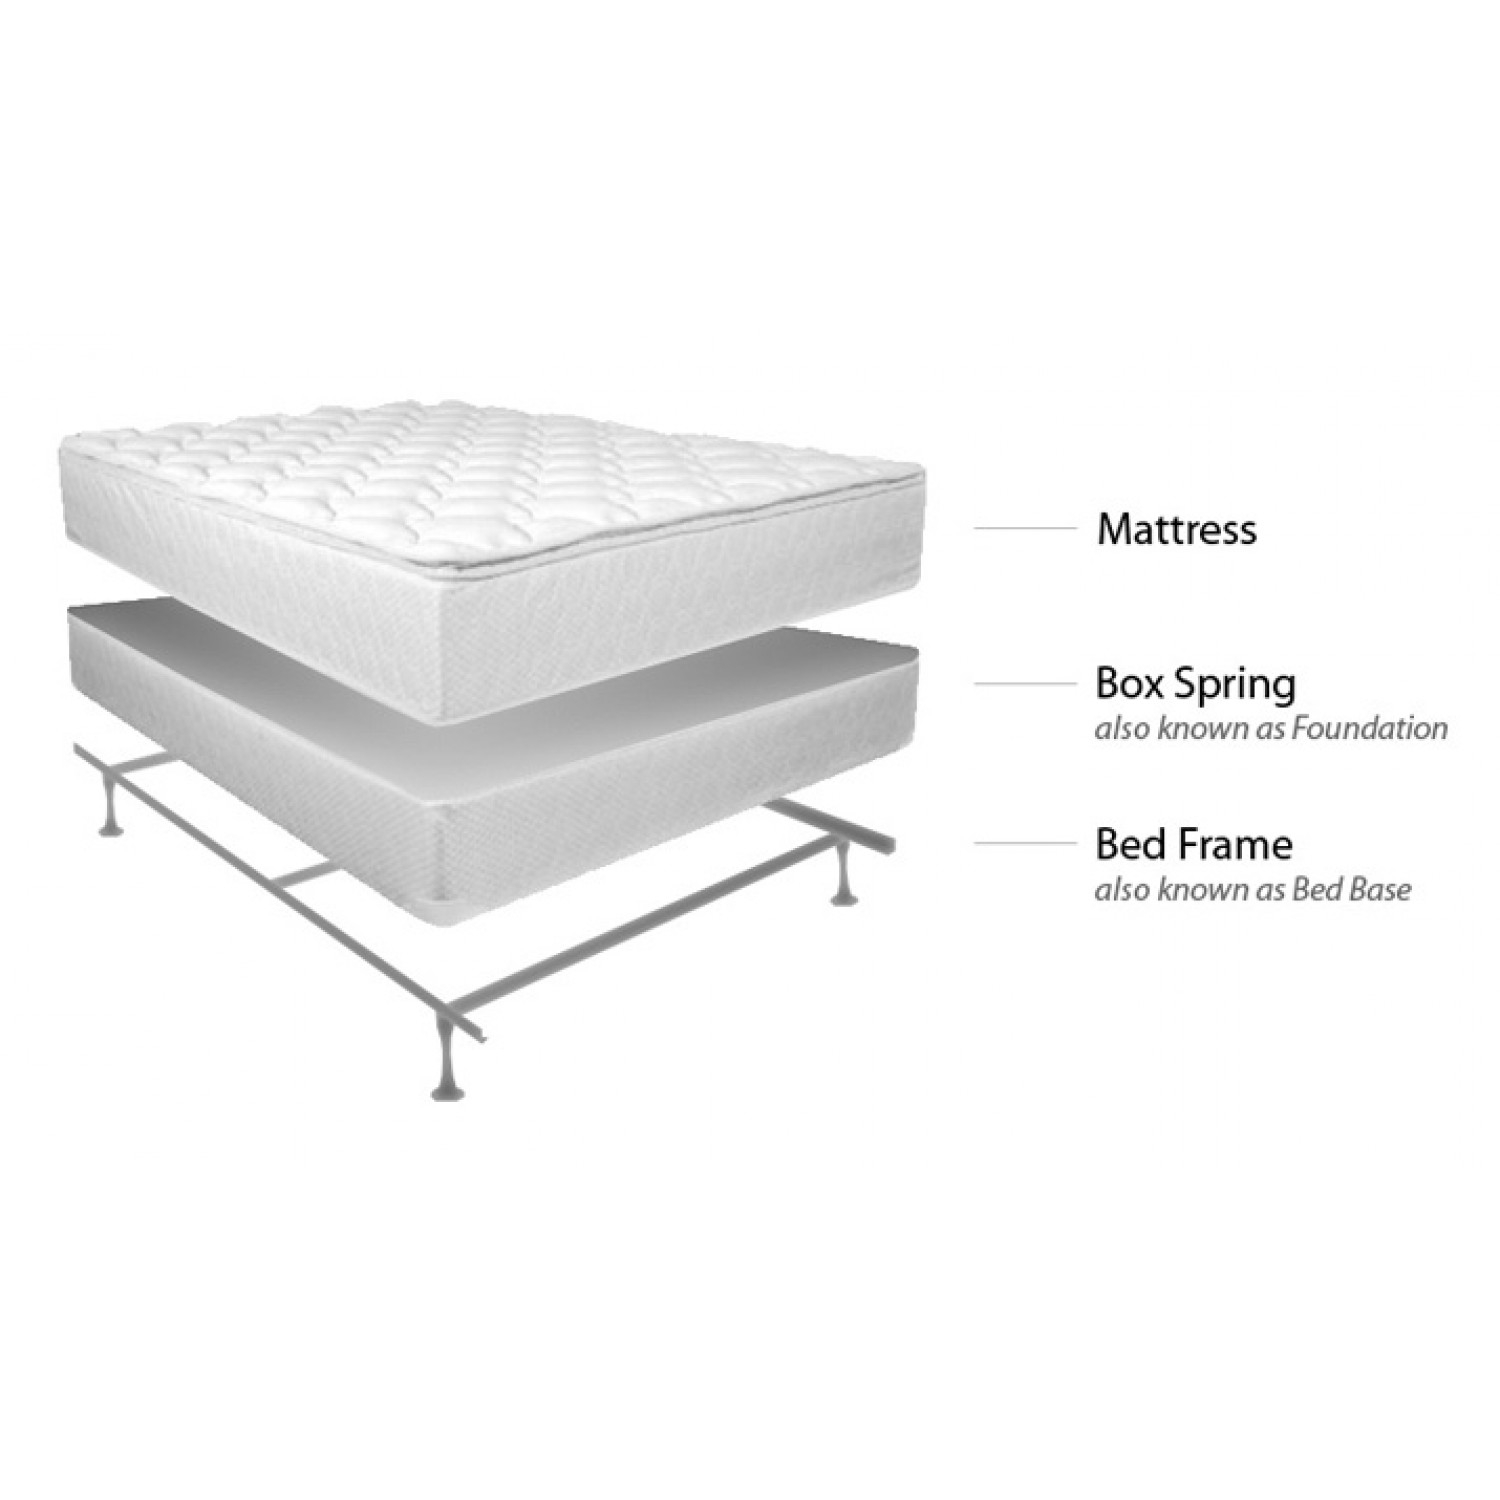 Permalink to Bed Frames For Mattress And Box Spring